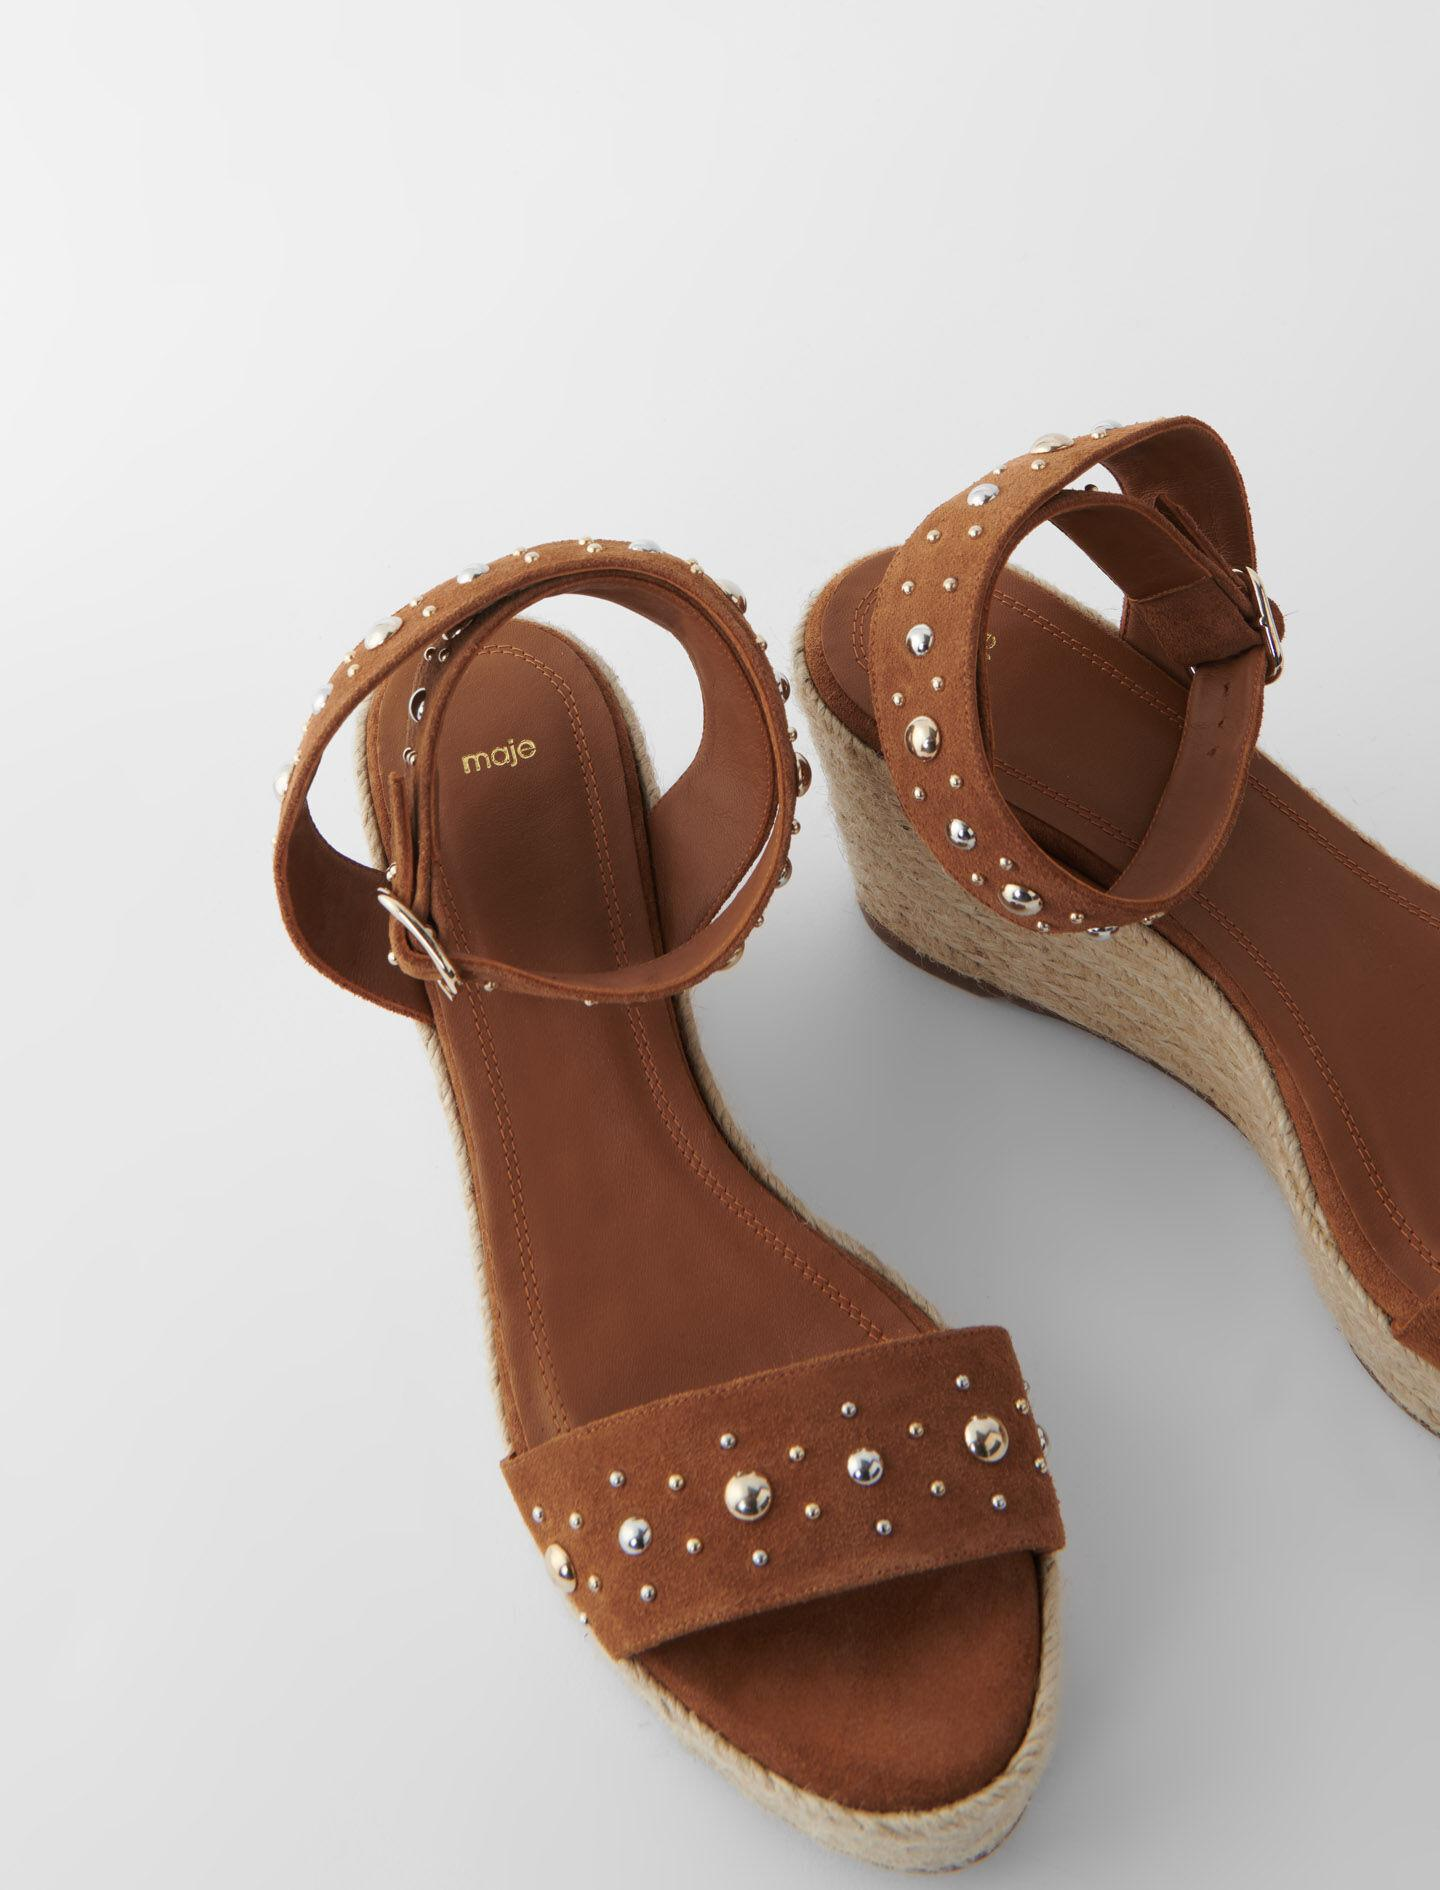 WEDGE SANDALS WITH SUEDE STRAPS 4